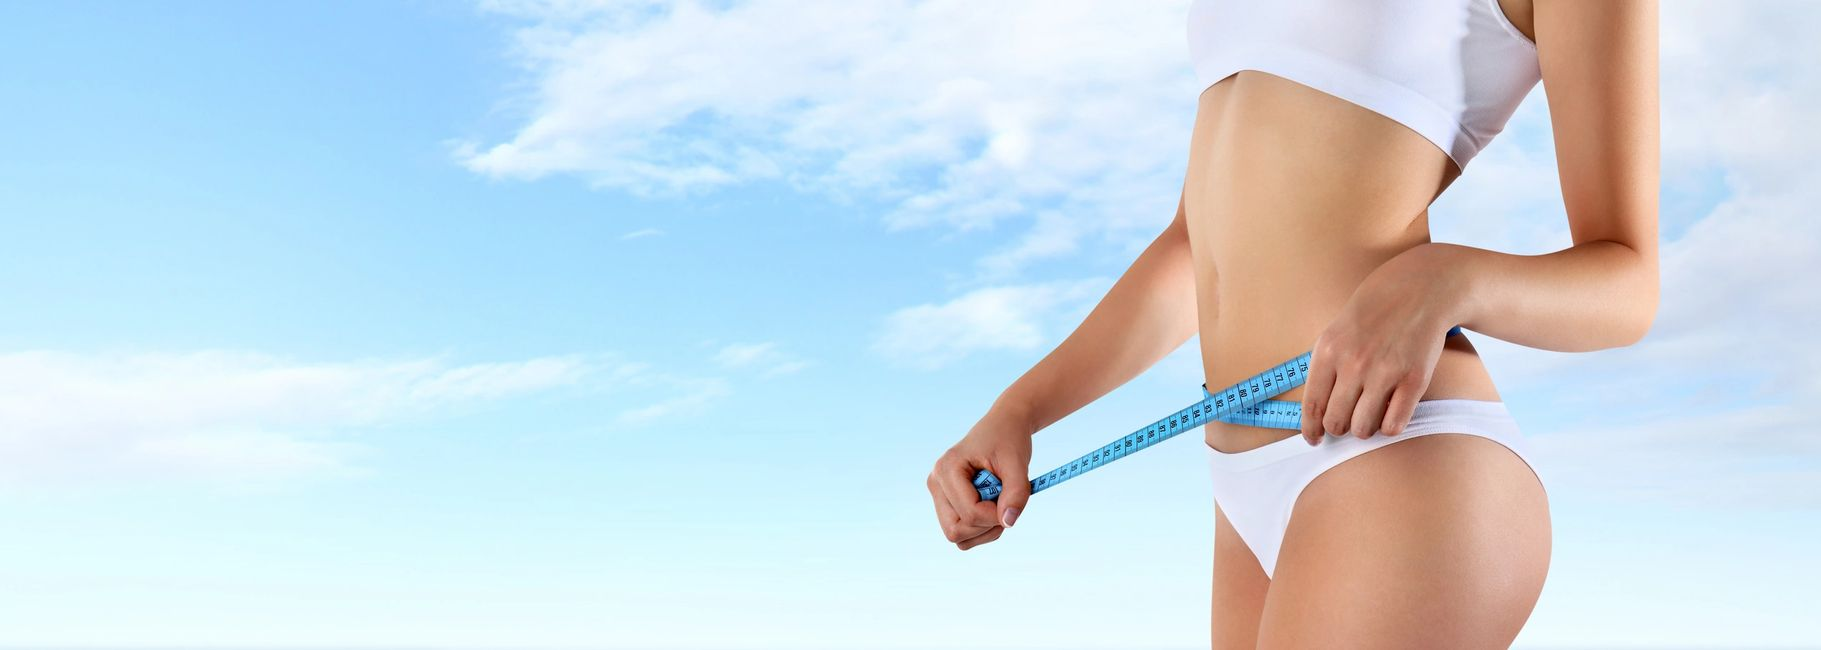 Fat freezing is treatment which is designed to freeze and therefore destroy fat cells.